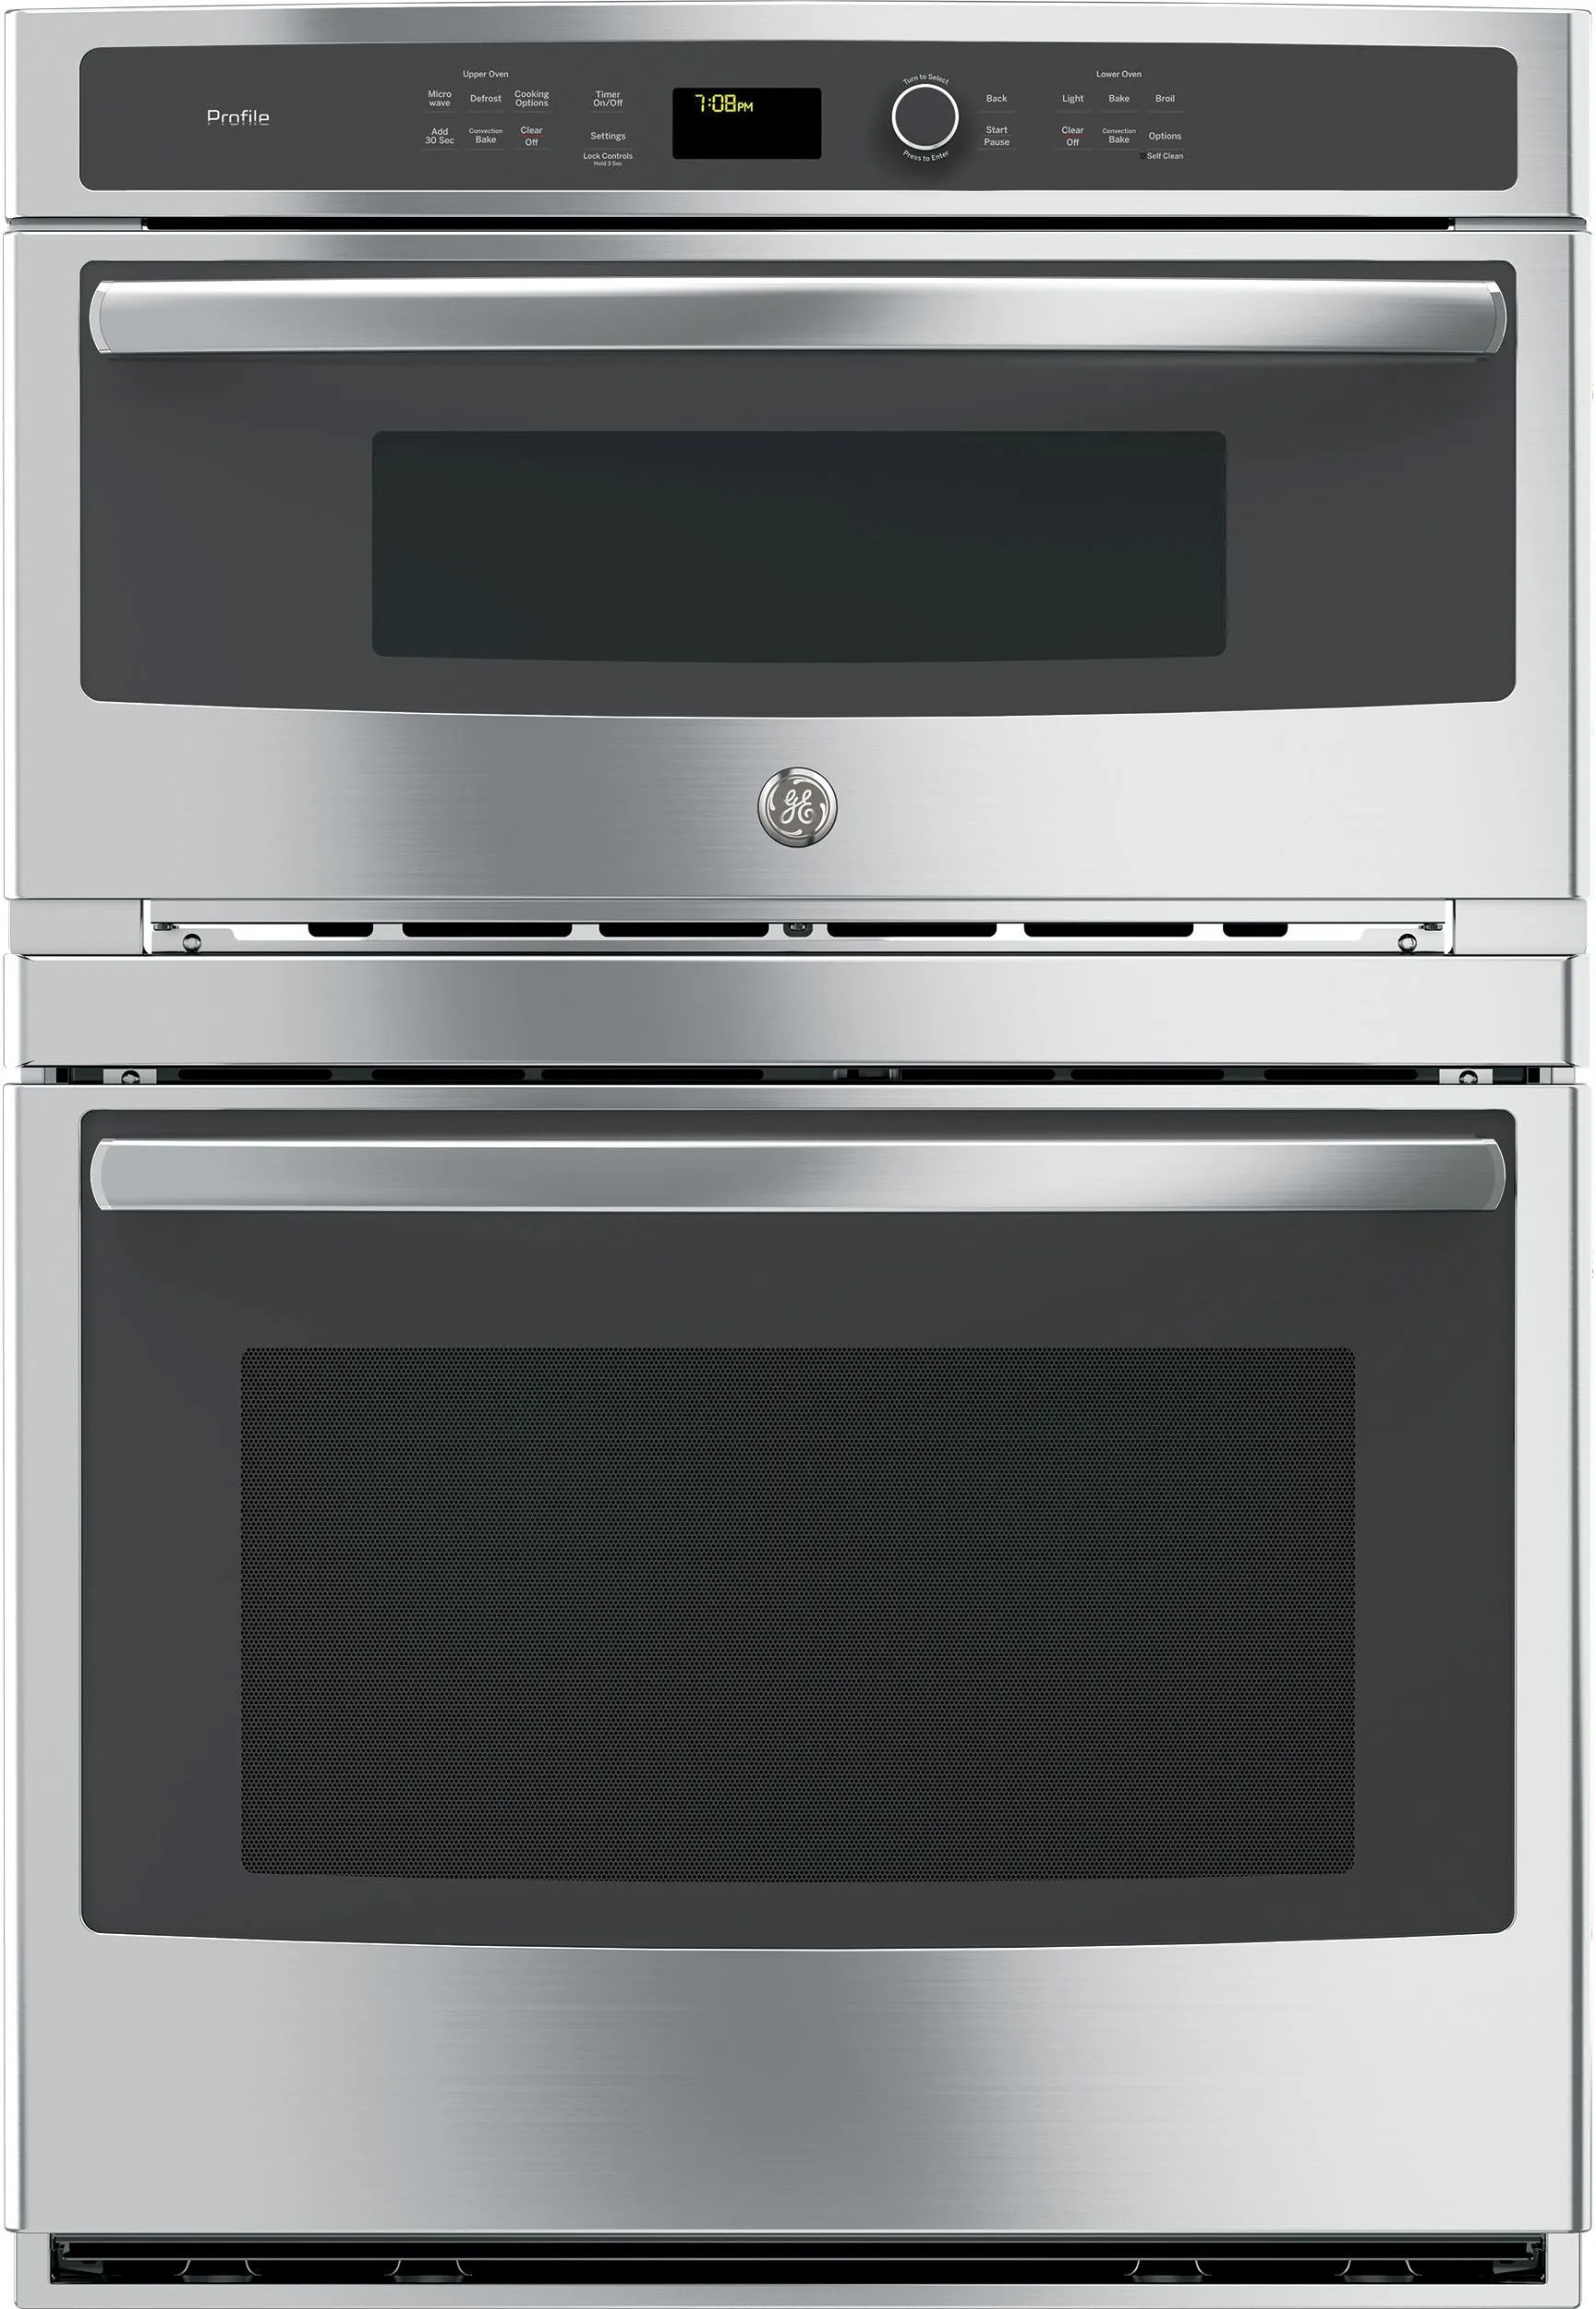 hight resolution of ge profile series 30 electric built in combination microwave oven stainless